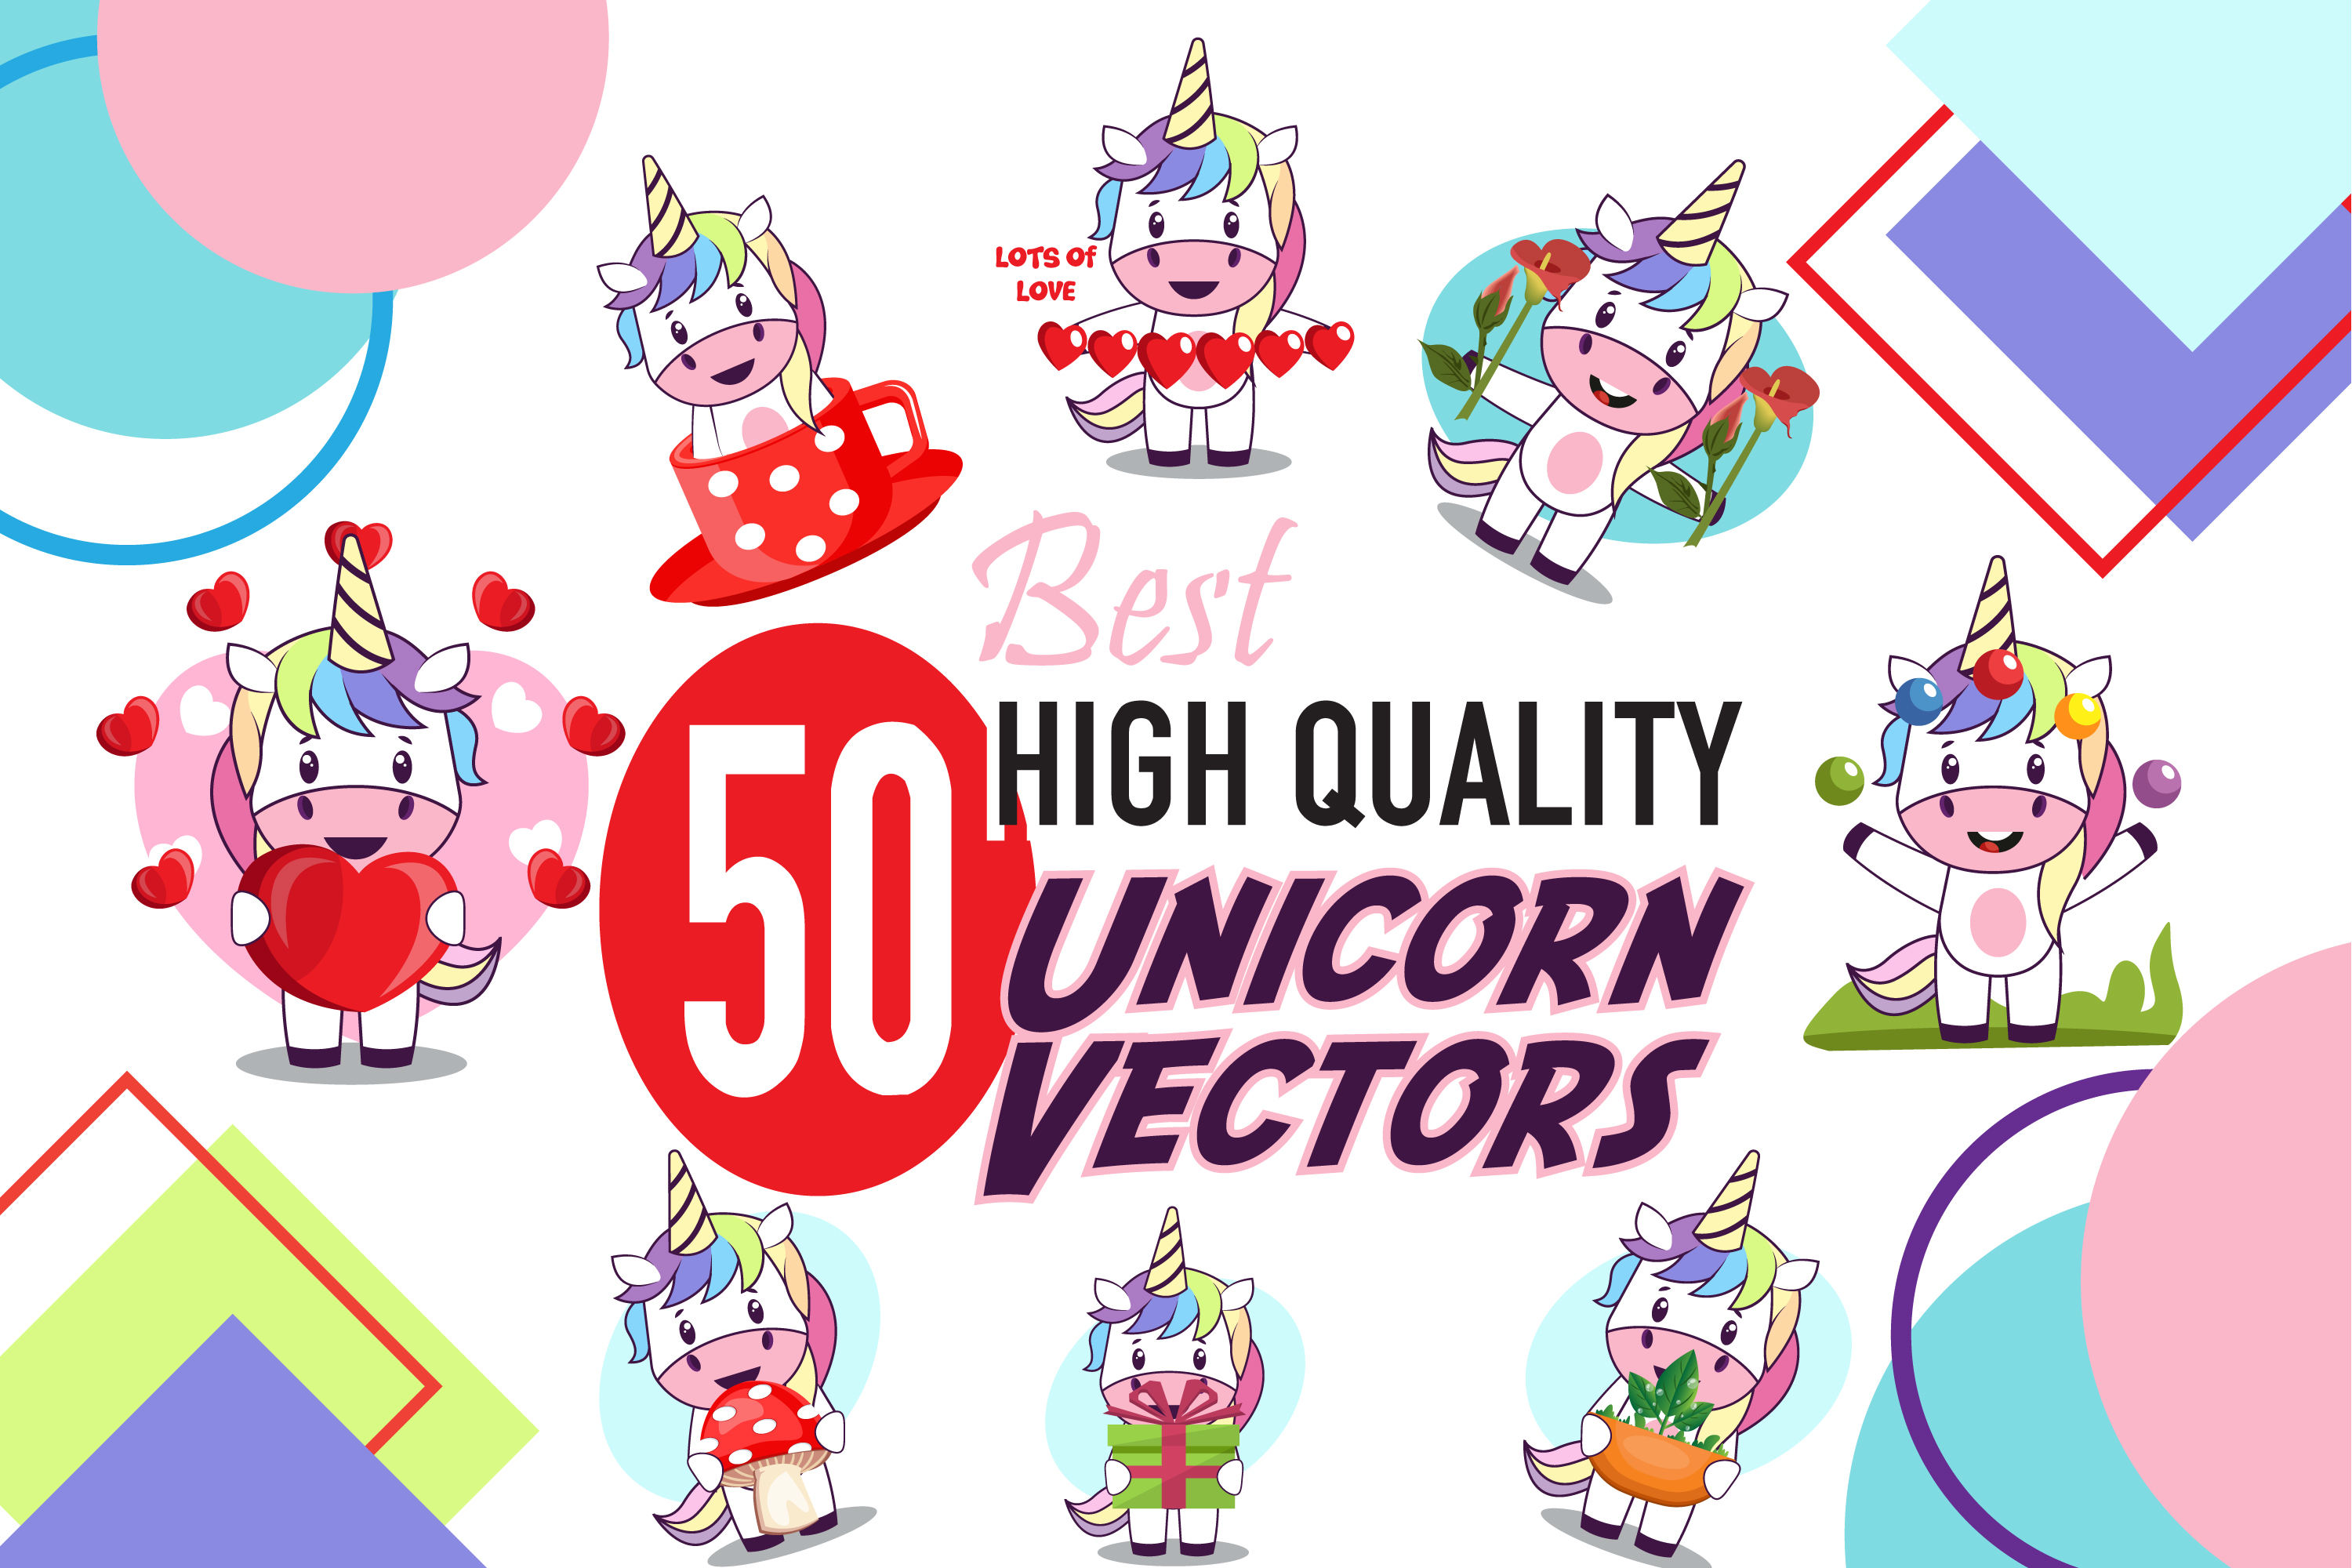 50x Unicorn Character Vector Illustration Pack example image 1